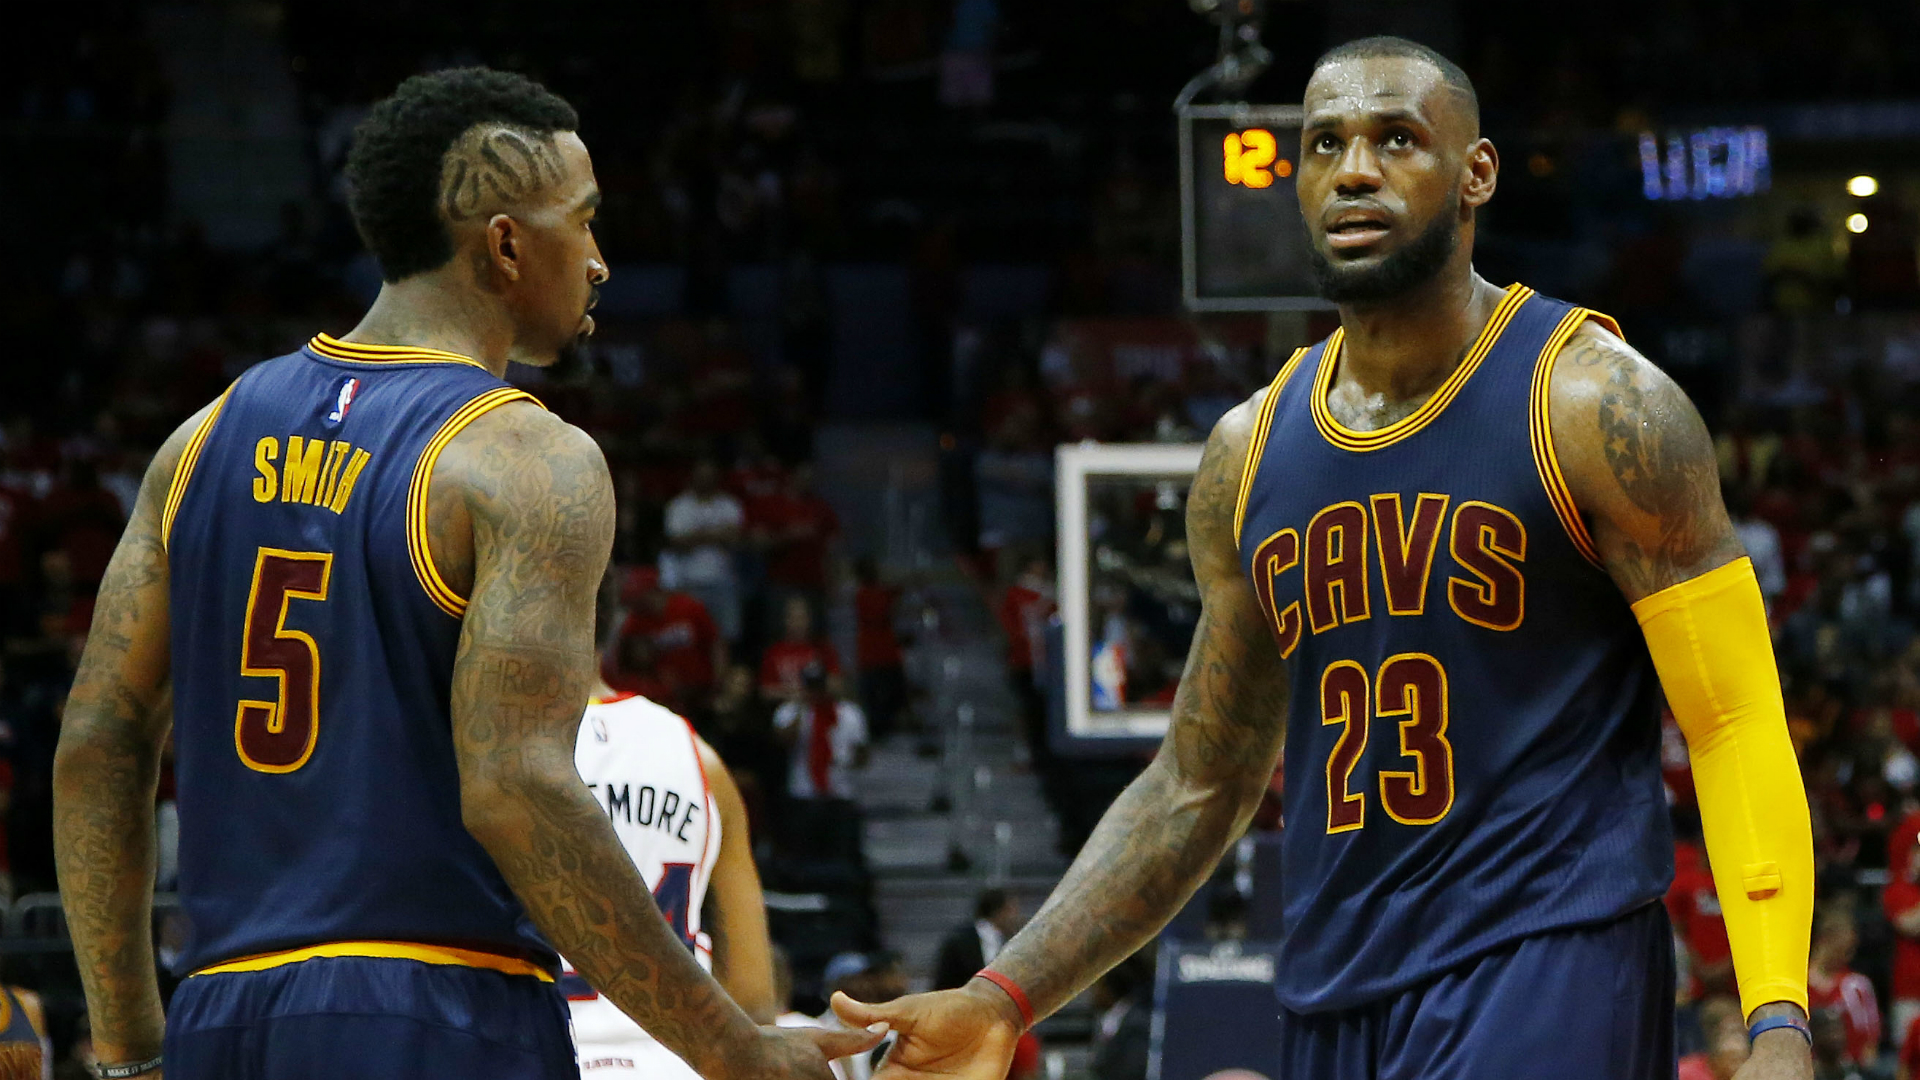 Hawks vs. Cavaliers Game 2: Time, TV info and analysis ...